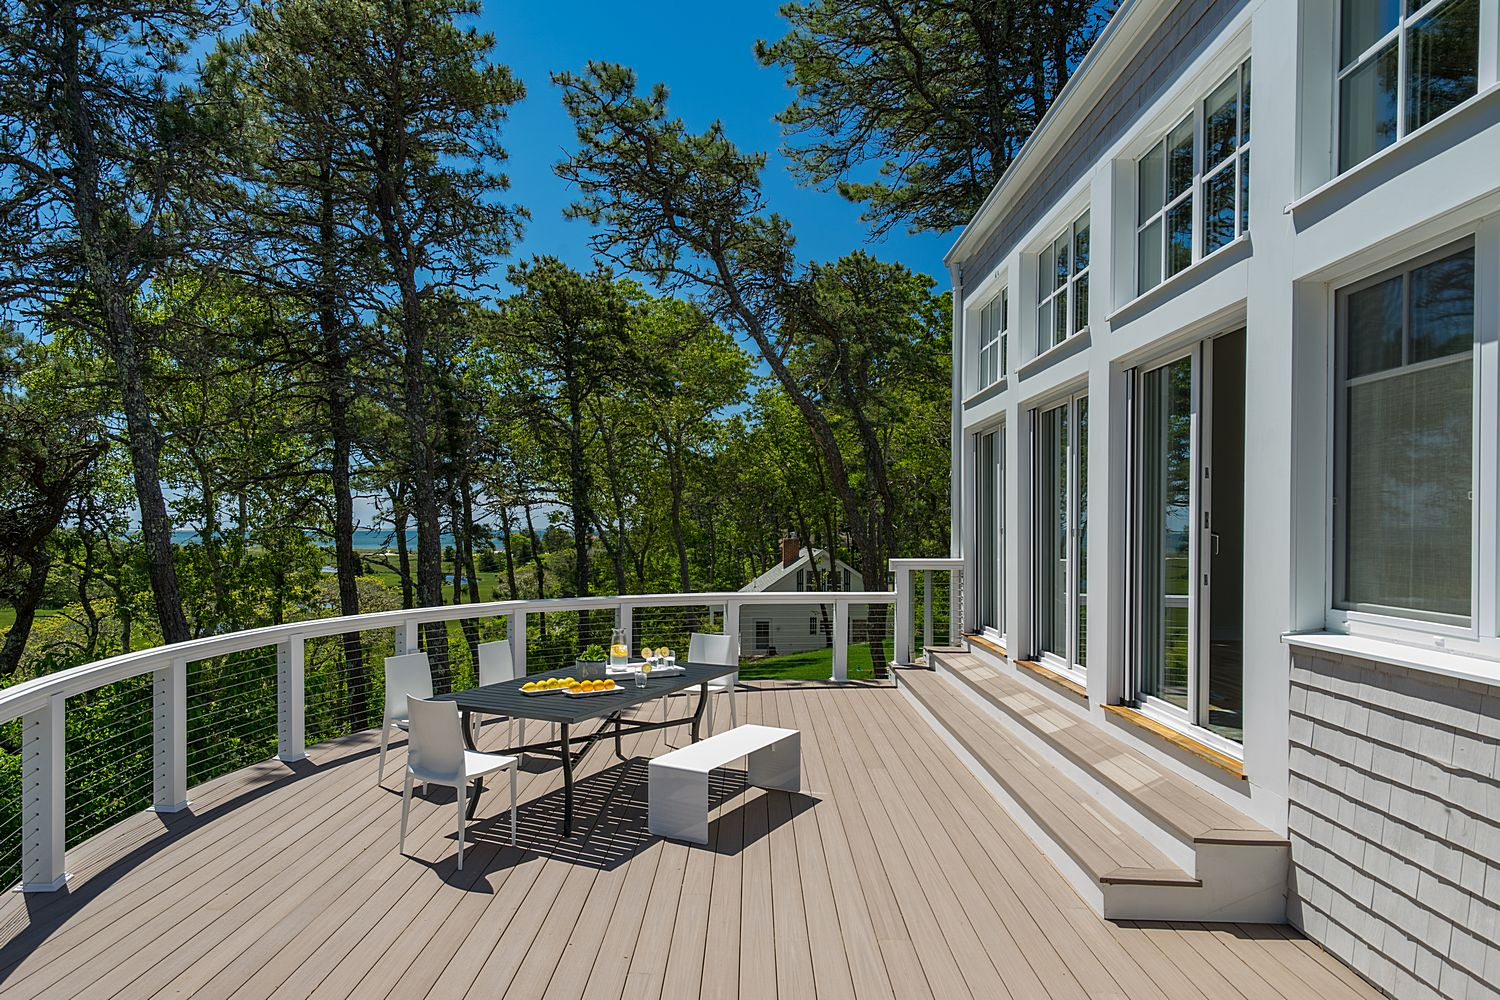 huge expansive deck with dining area